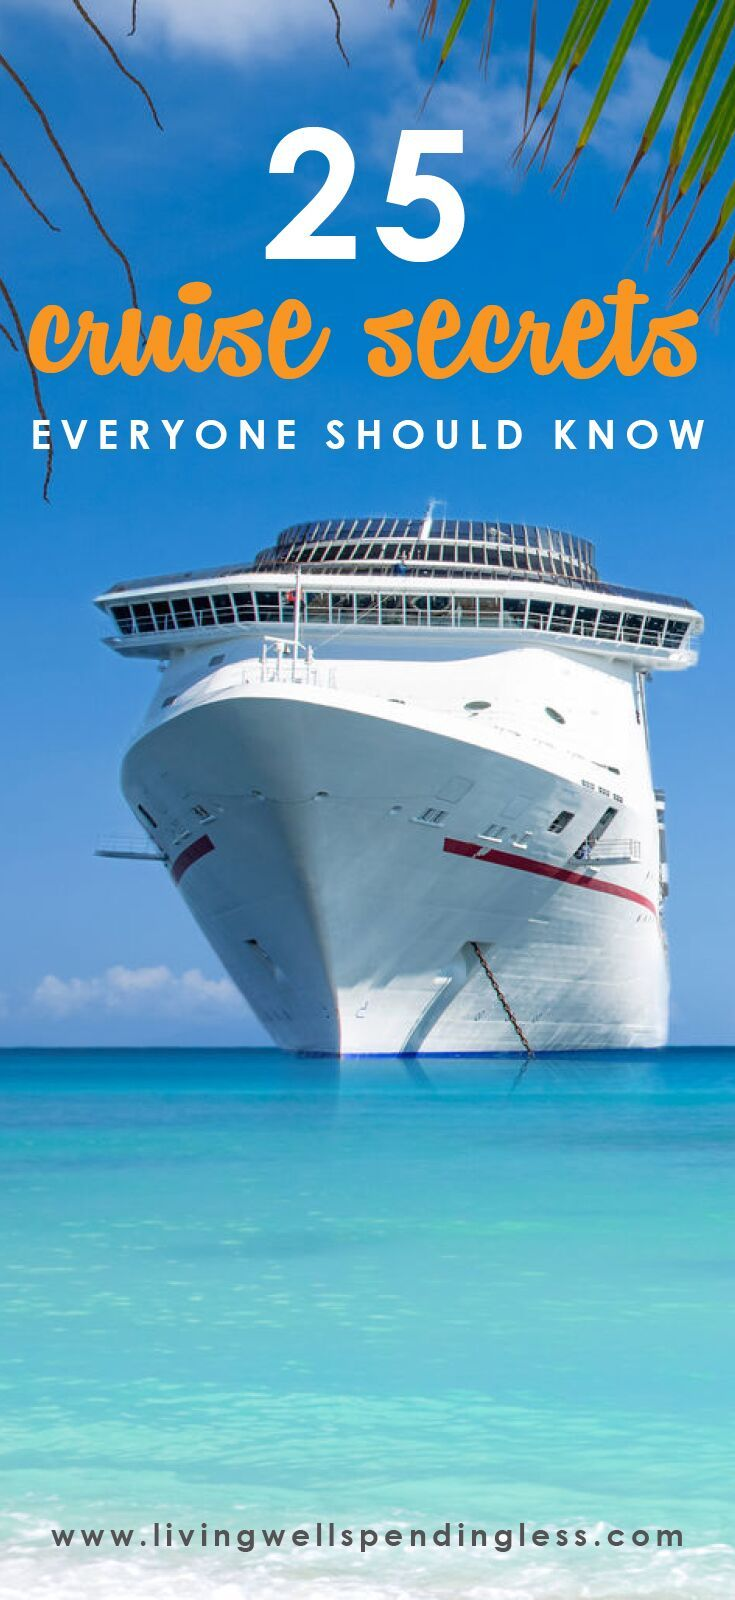 25 Tips for Cruising | How to Save Money on a Cruise | Budget Travel Tips | Planning A Vacation| Cruise Tips for First-Timers via lwsl